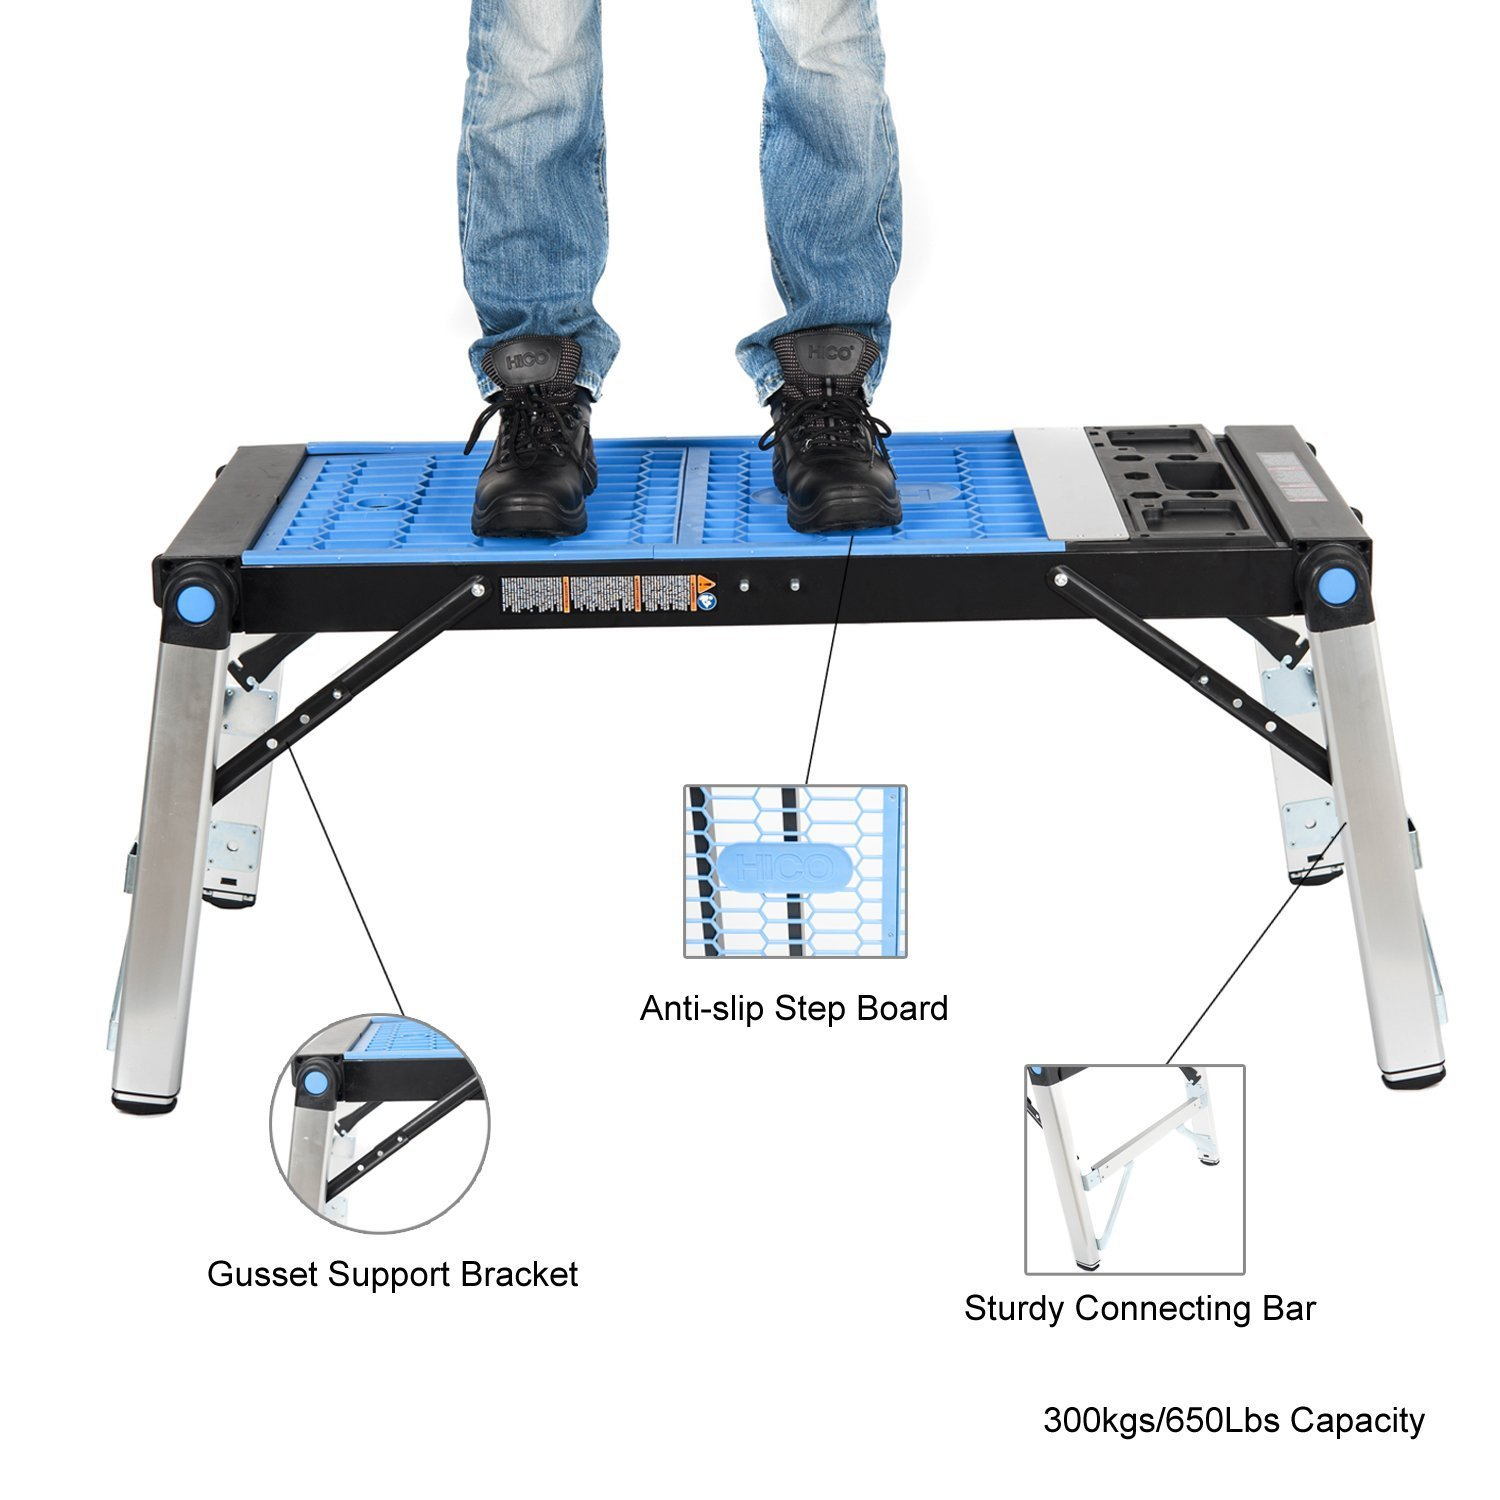 HICO WIS03-B 3-in-1 Multi-Function Universal Capacity Portable Folding Work Table for Workbench Scaffold Platform and Creeper Carrier by HICO (Image #4)